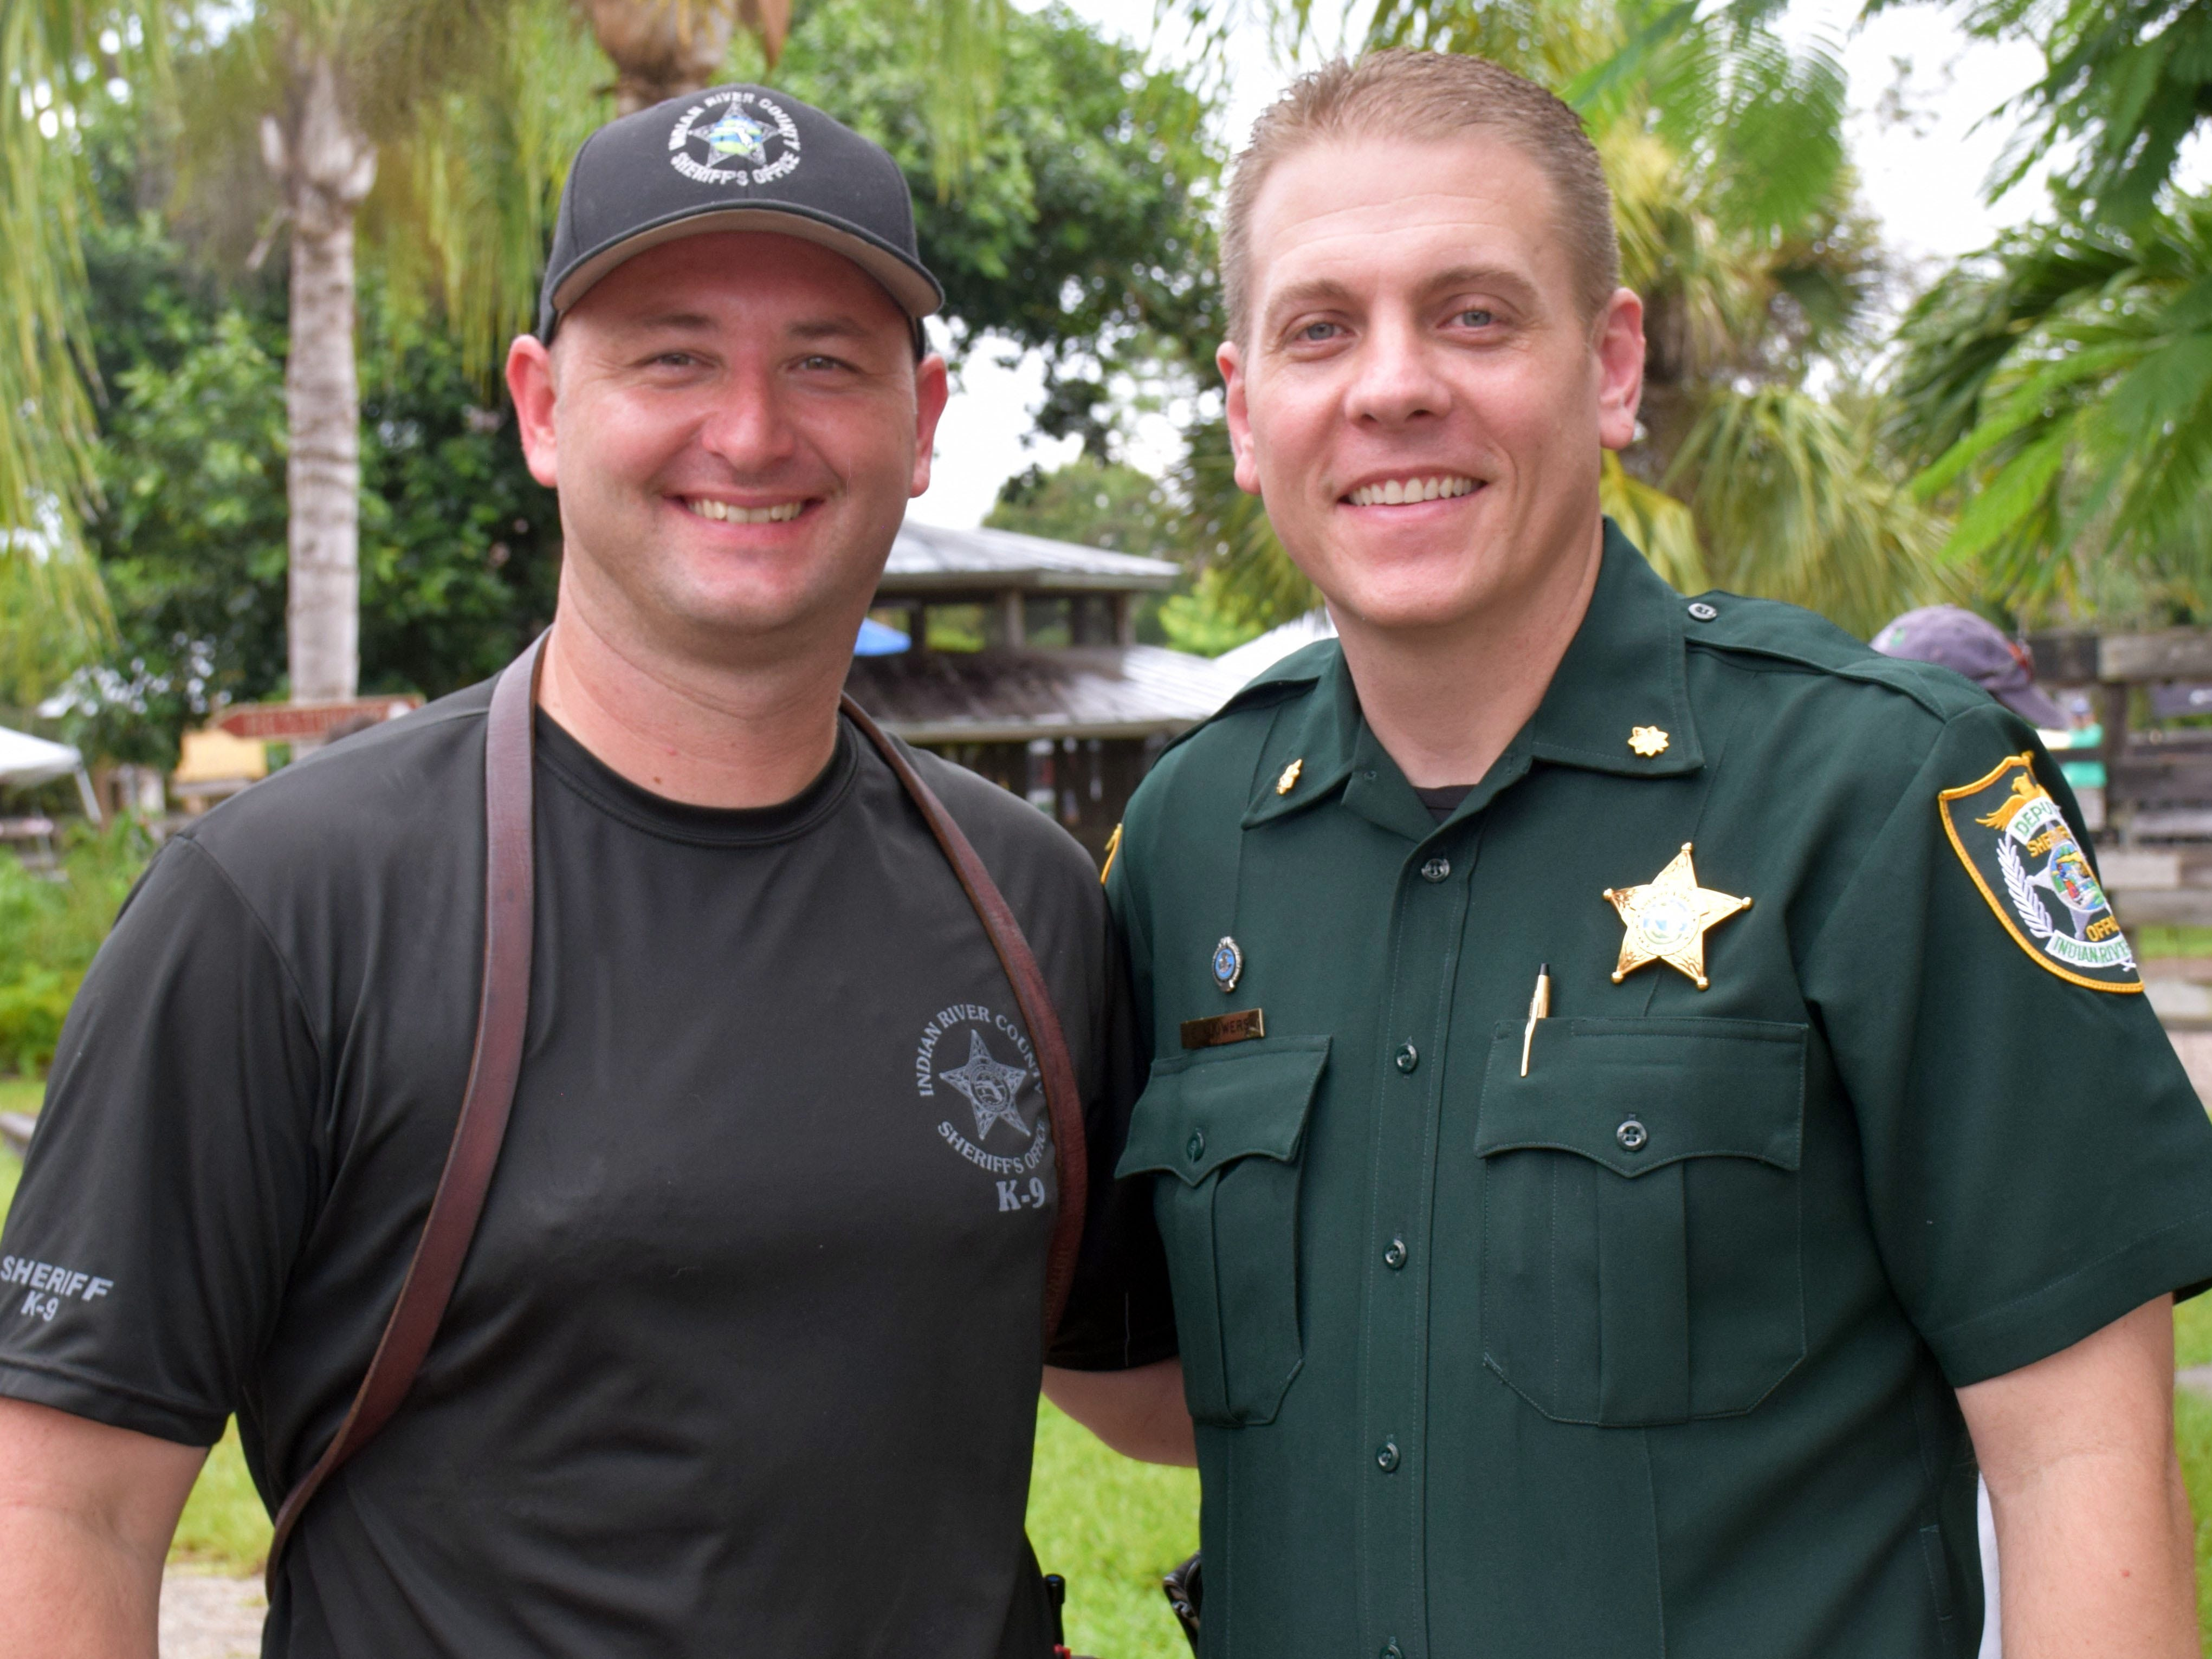 Richard Henson and Eric Flowers of the Indian River County Sheriff's Department.